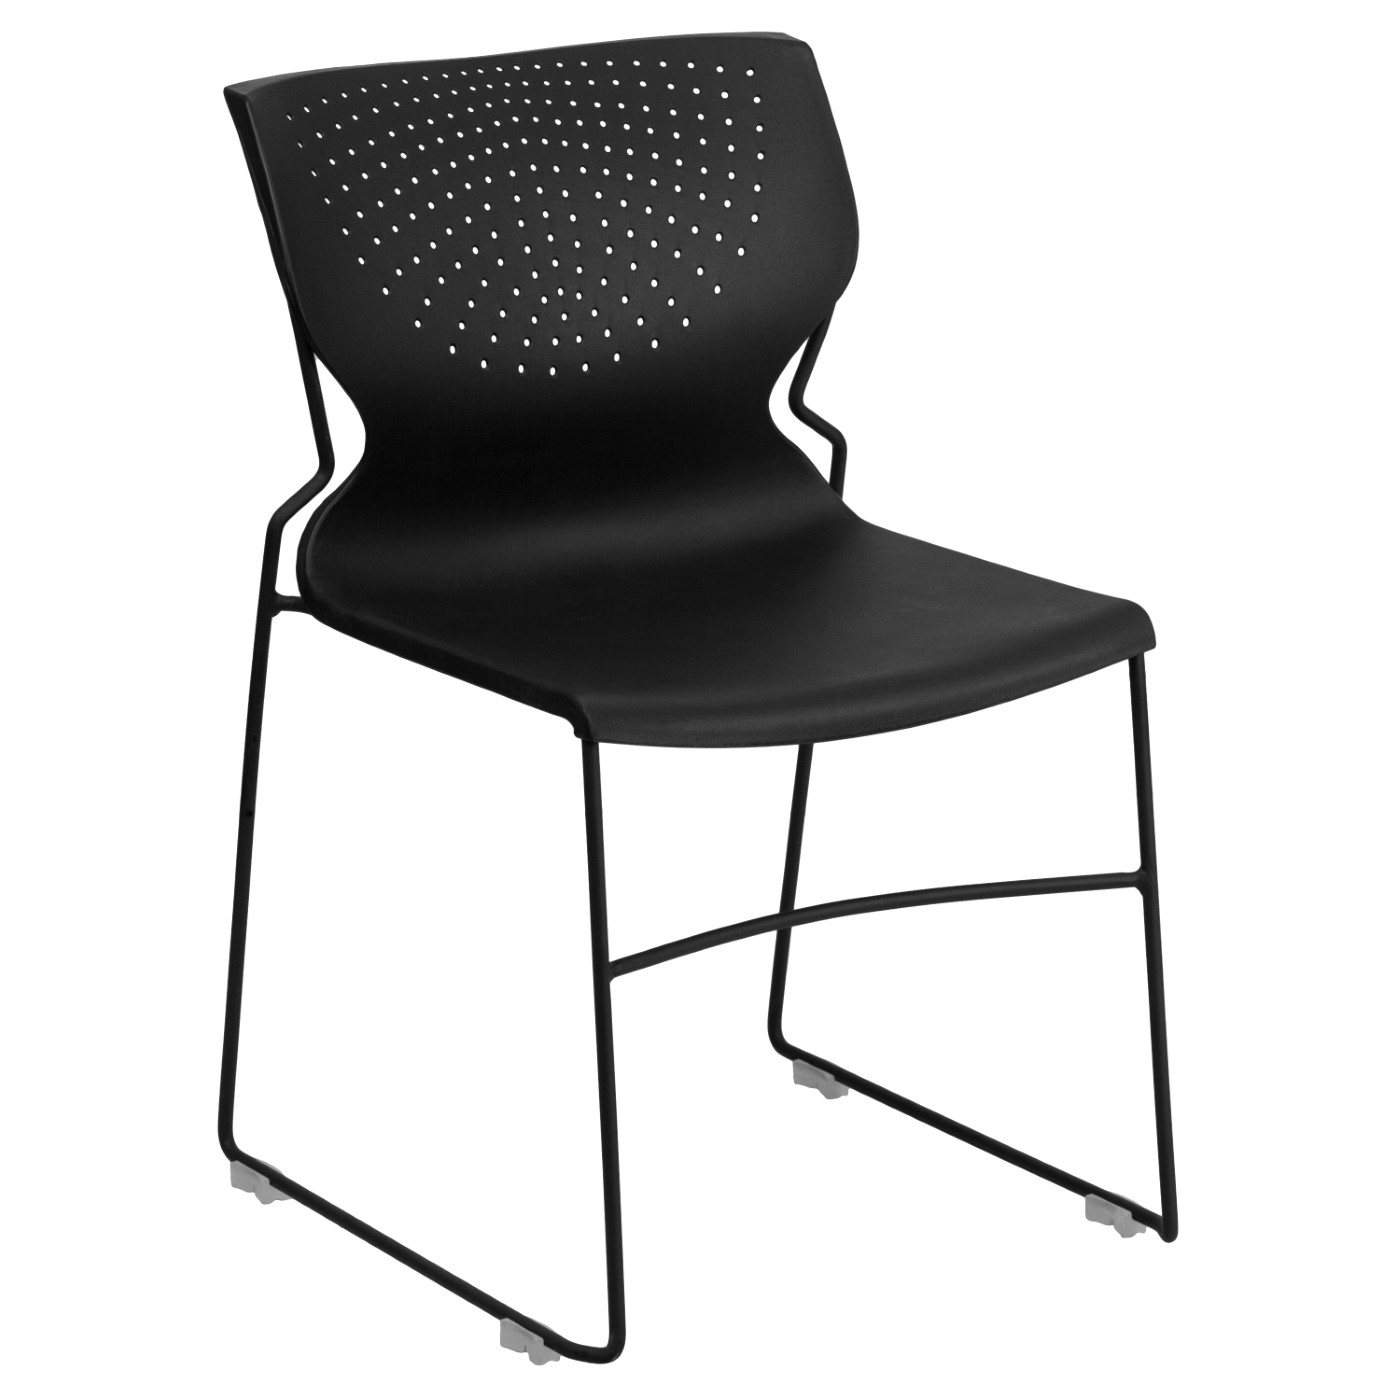 TOUGH ENOUGH Series 661 lb. Capacity Black Full Back Stack Chair with Black Powder Coated Frame